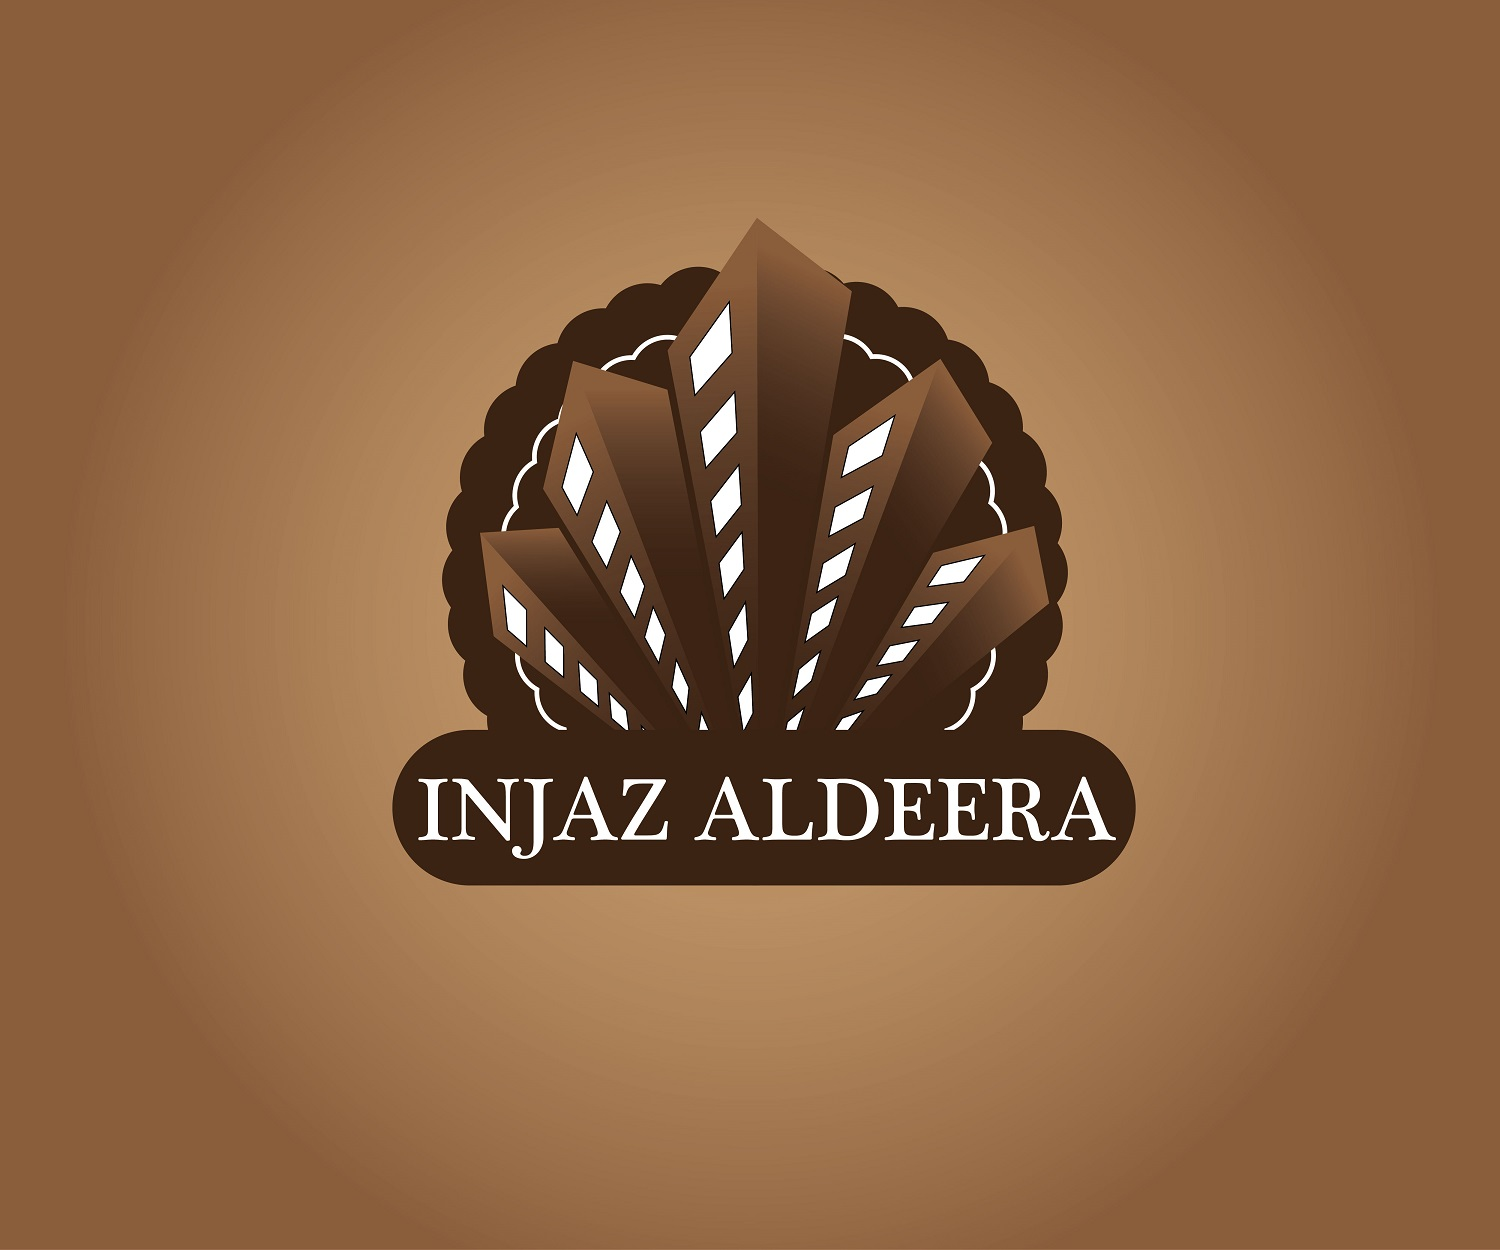 Logo Design by jhunzkie24 - Entry No. 34 in the Logo Design Contest Fun Logo Design for Injaz aldeera.